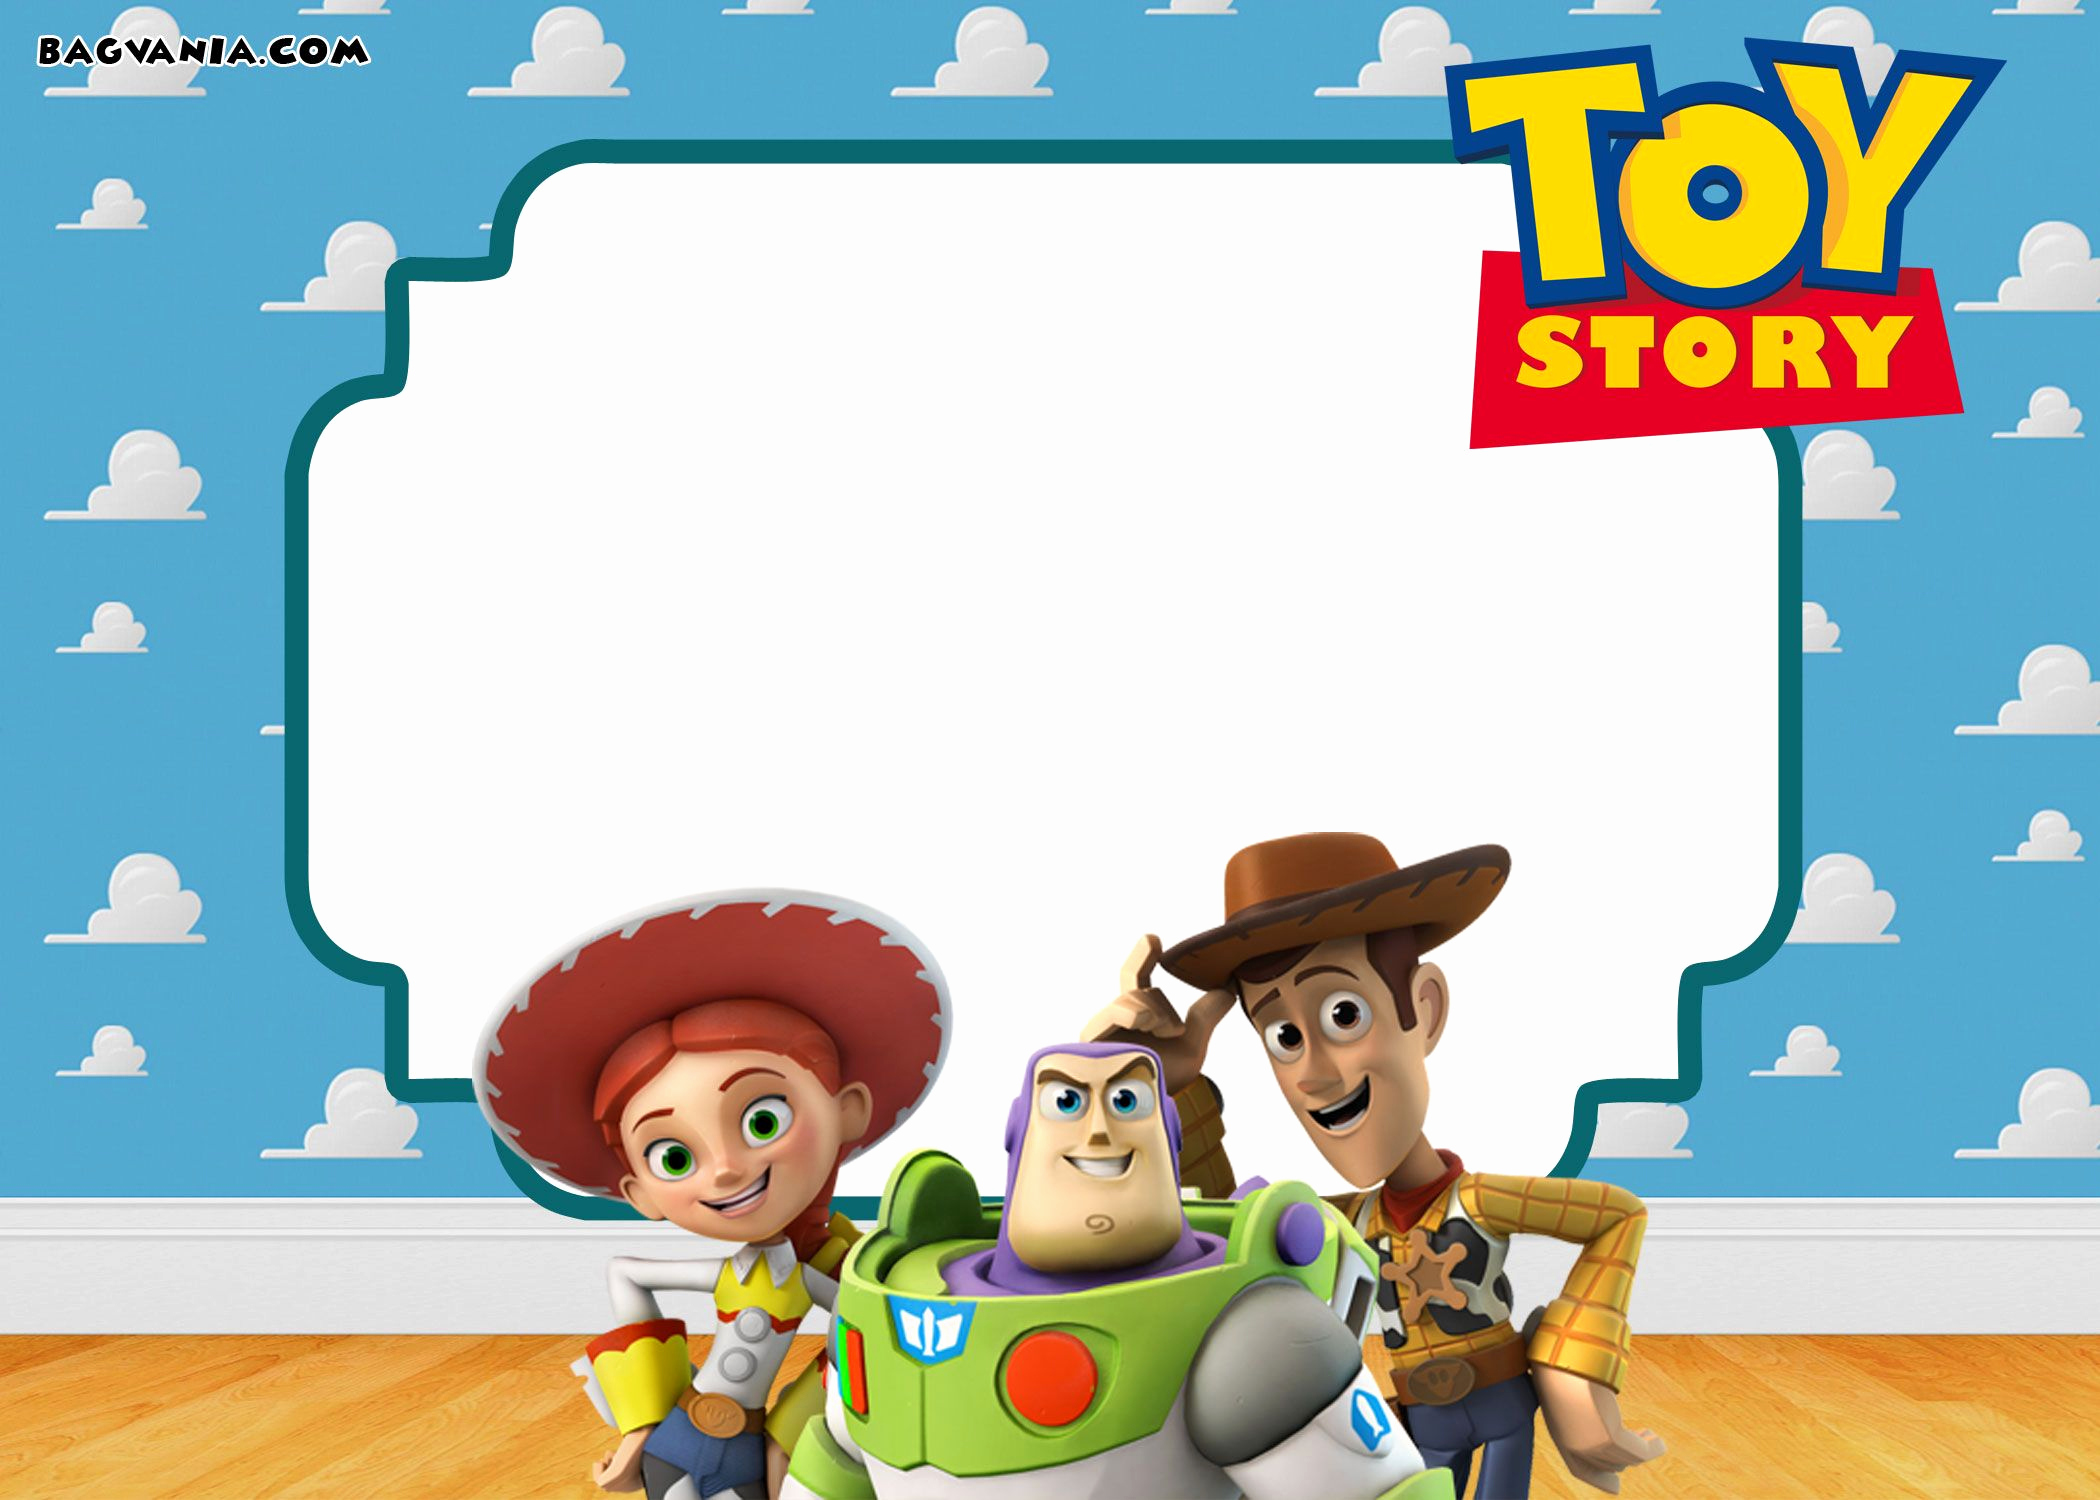 Toy Story Invitation Template Free Lovely Free Printable toy Story 3 Birthday Invitations